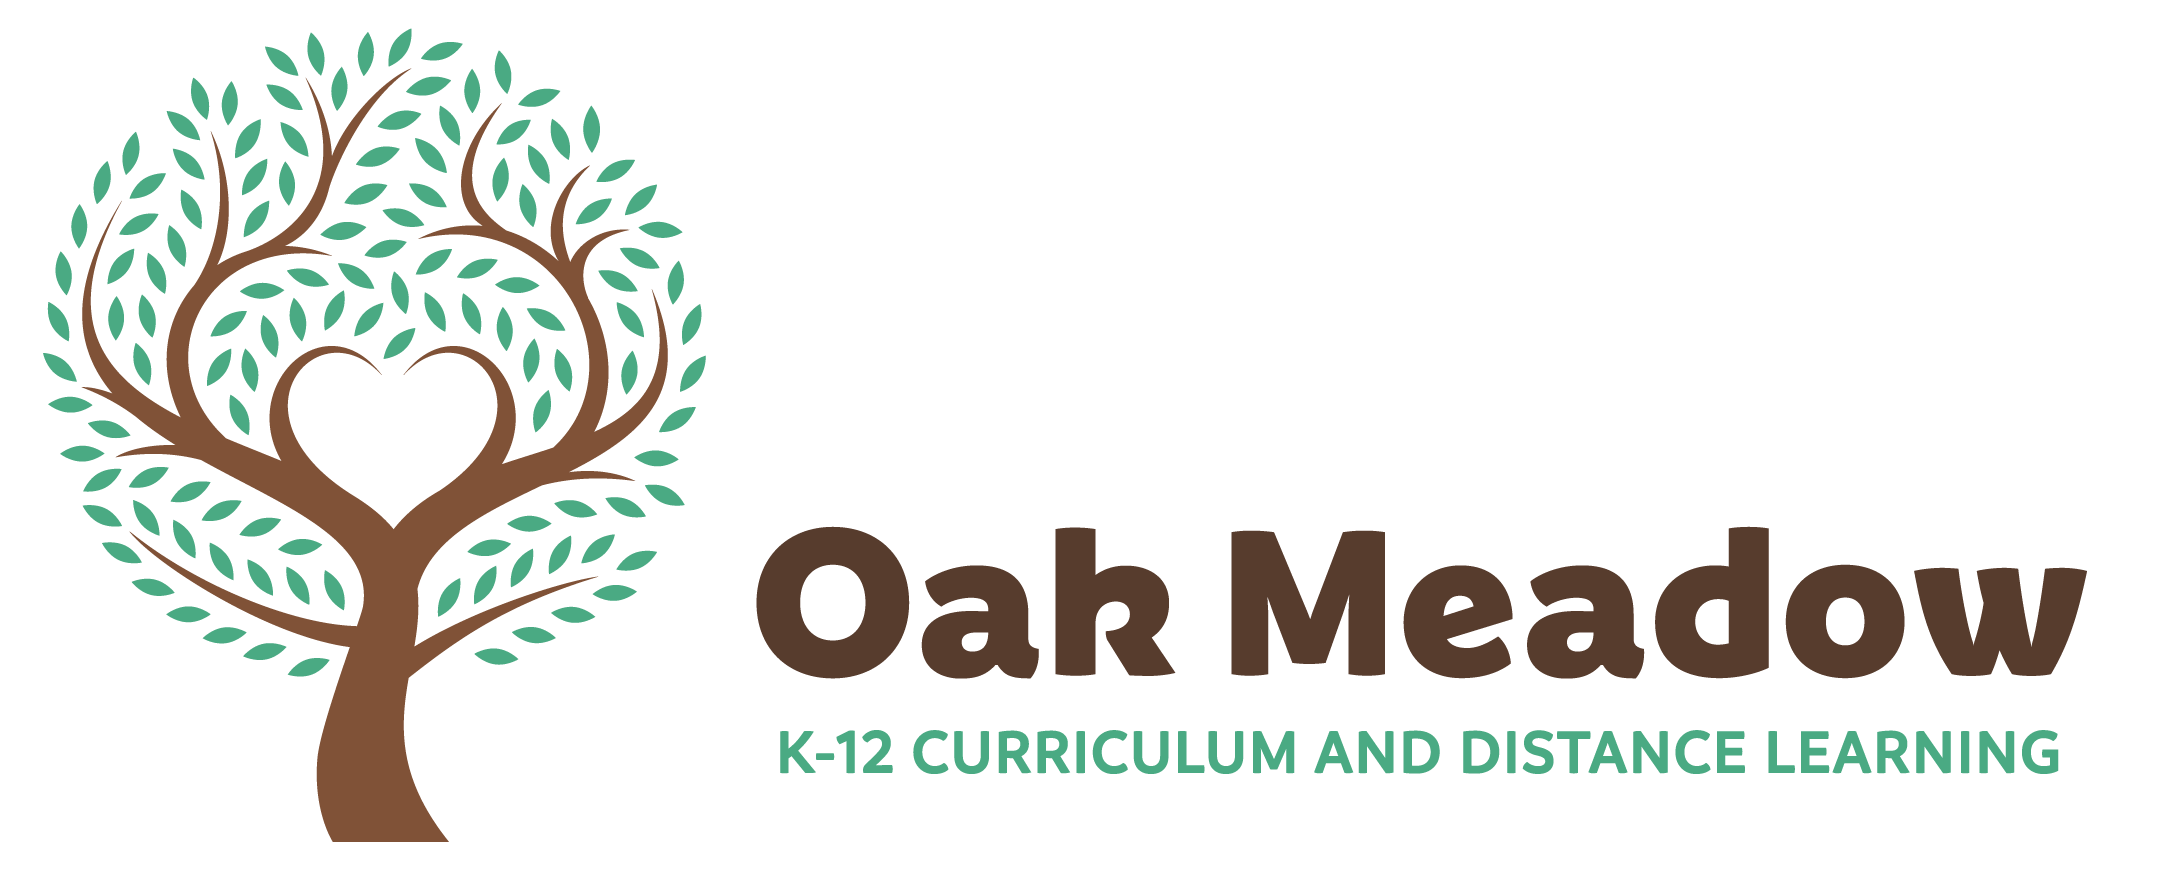 Oak Meadow logo